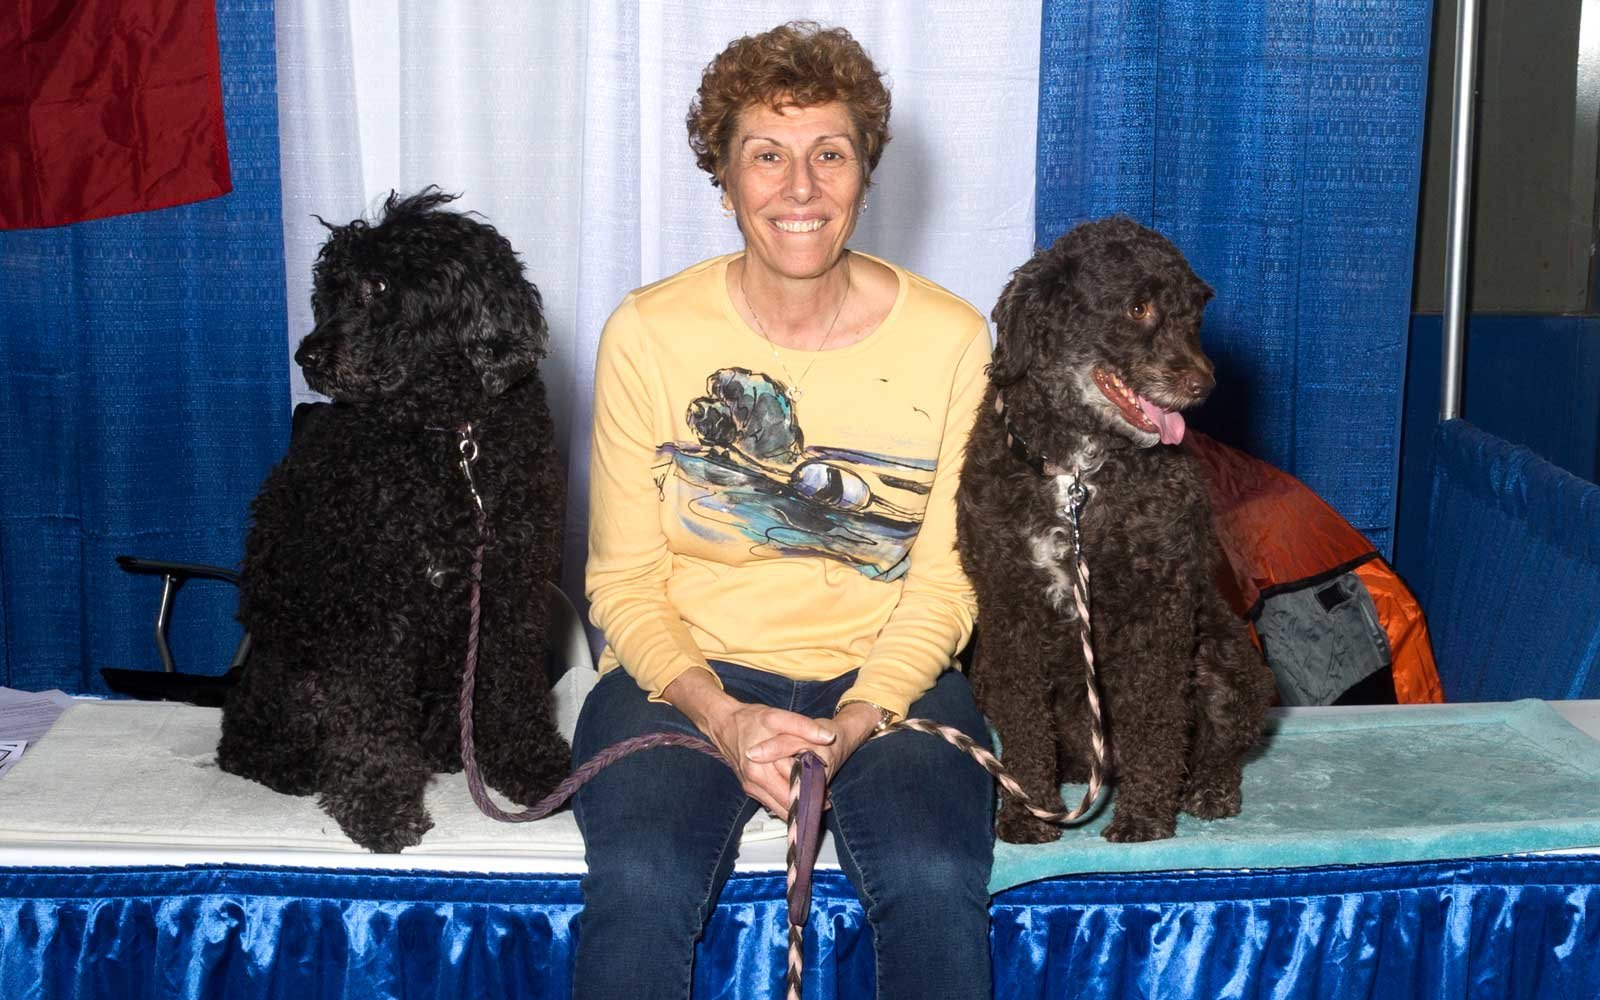 The 140th Annual Westminster Dog Show